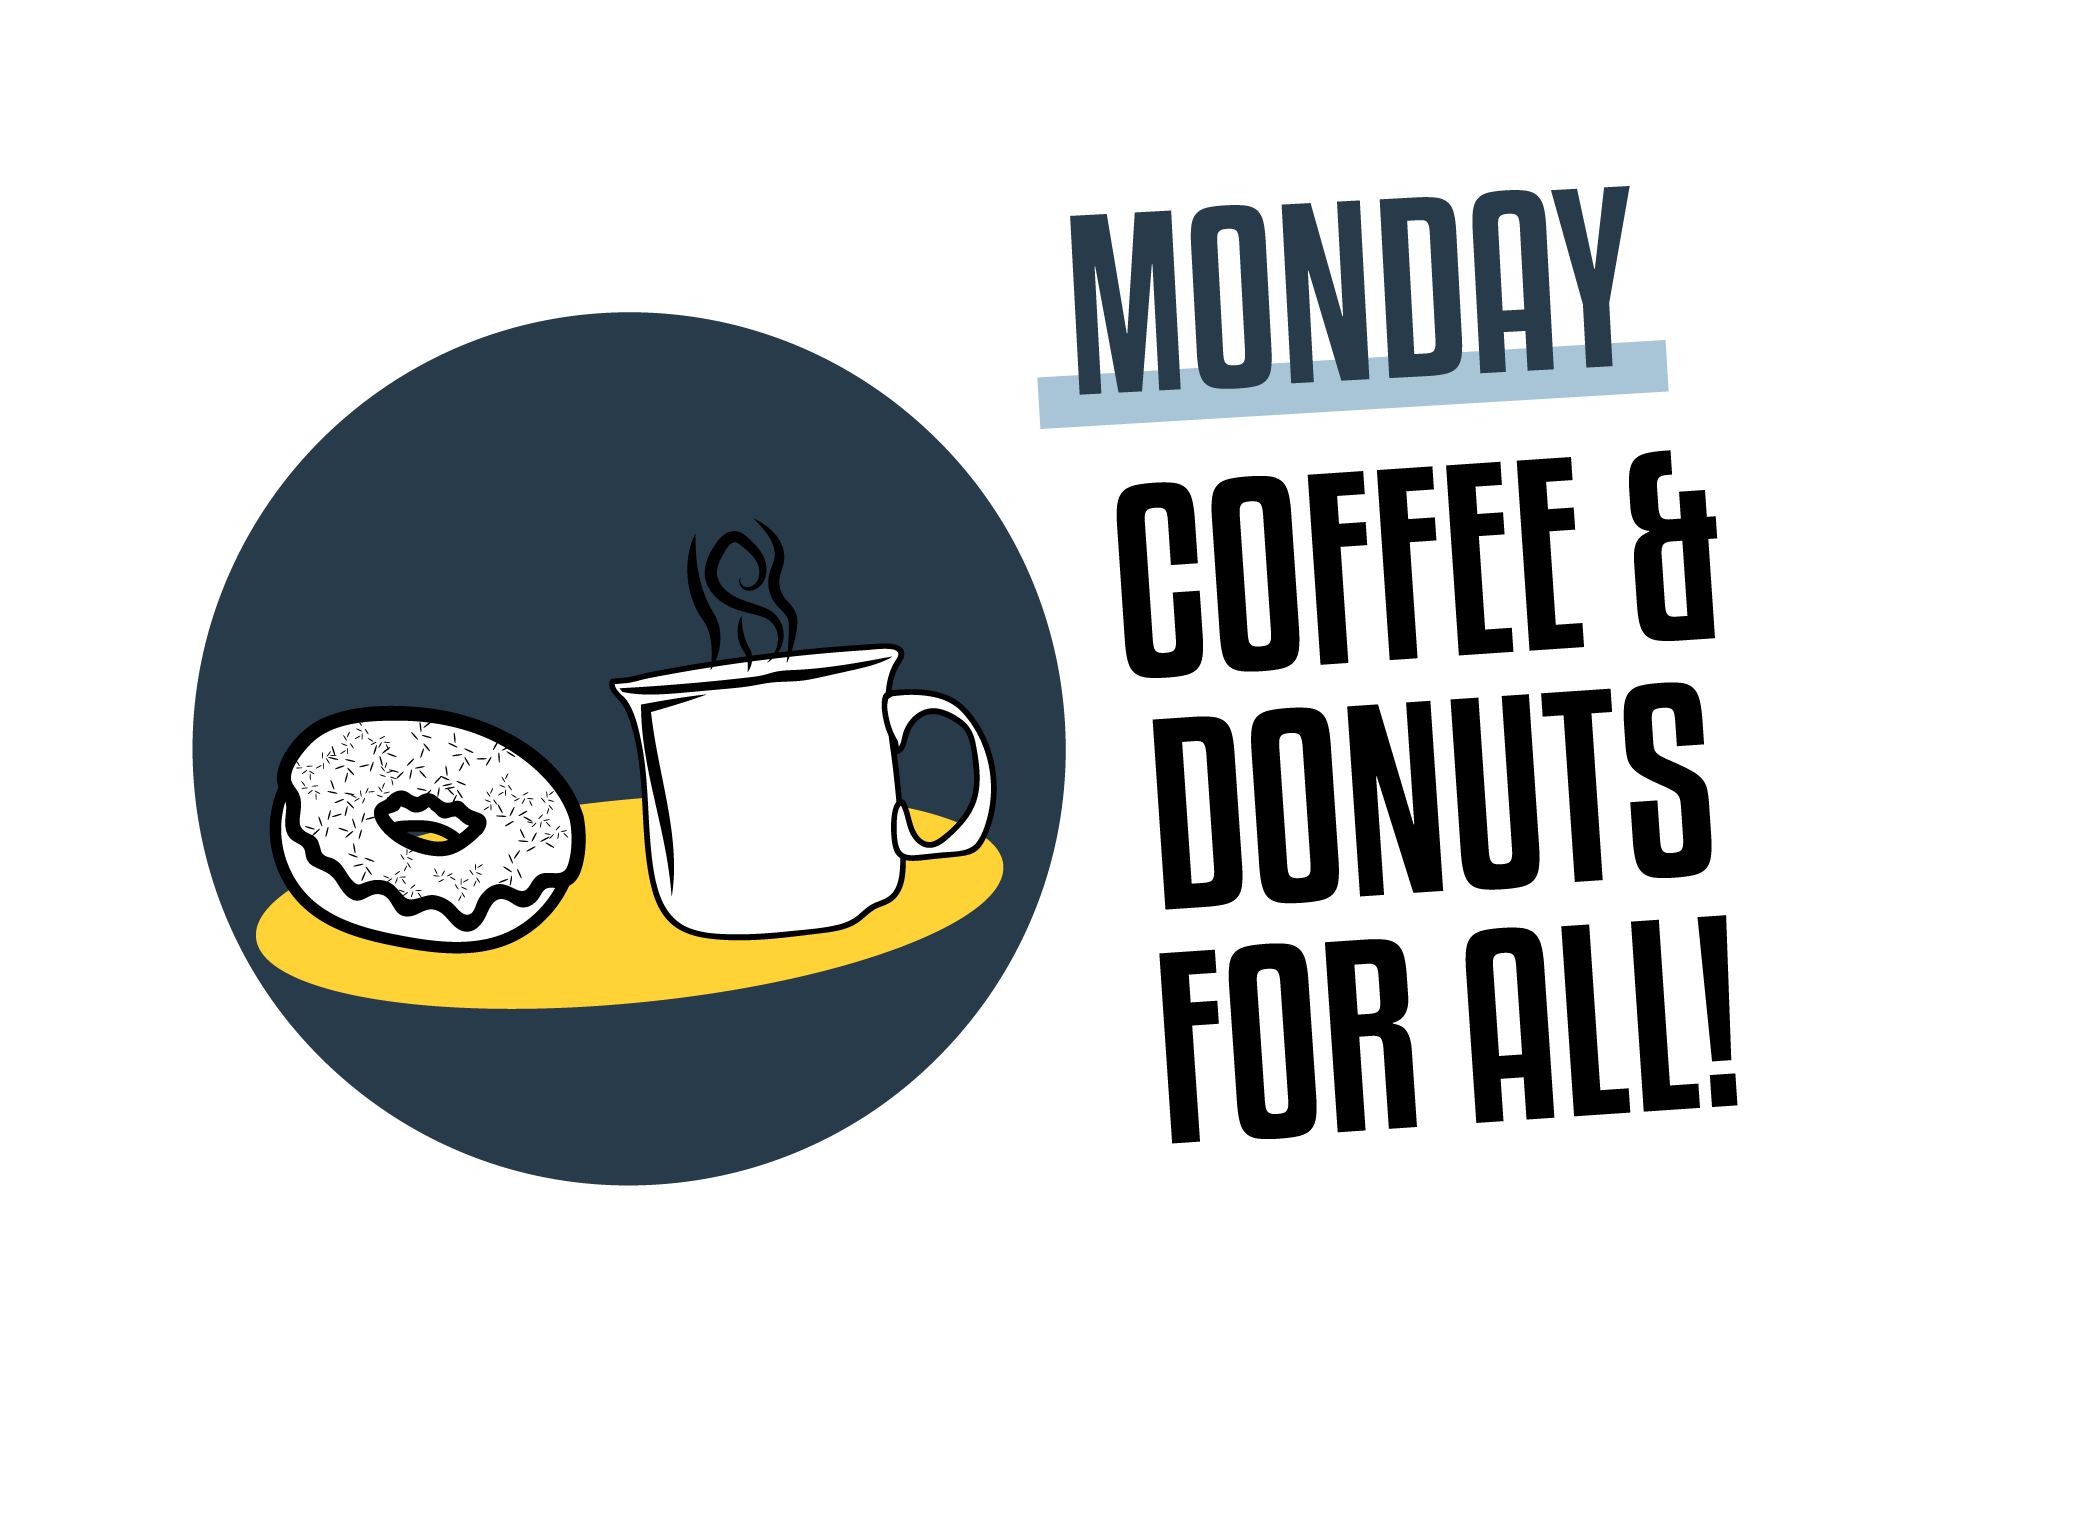 Coffee-Donuts-info-Icon.png